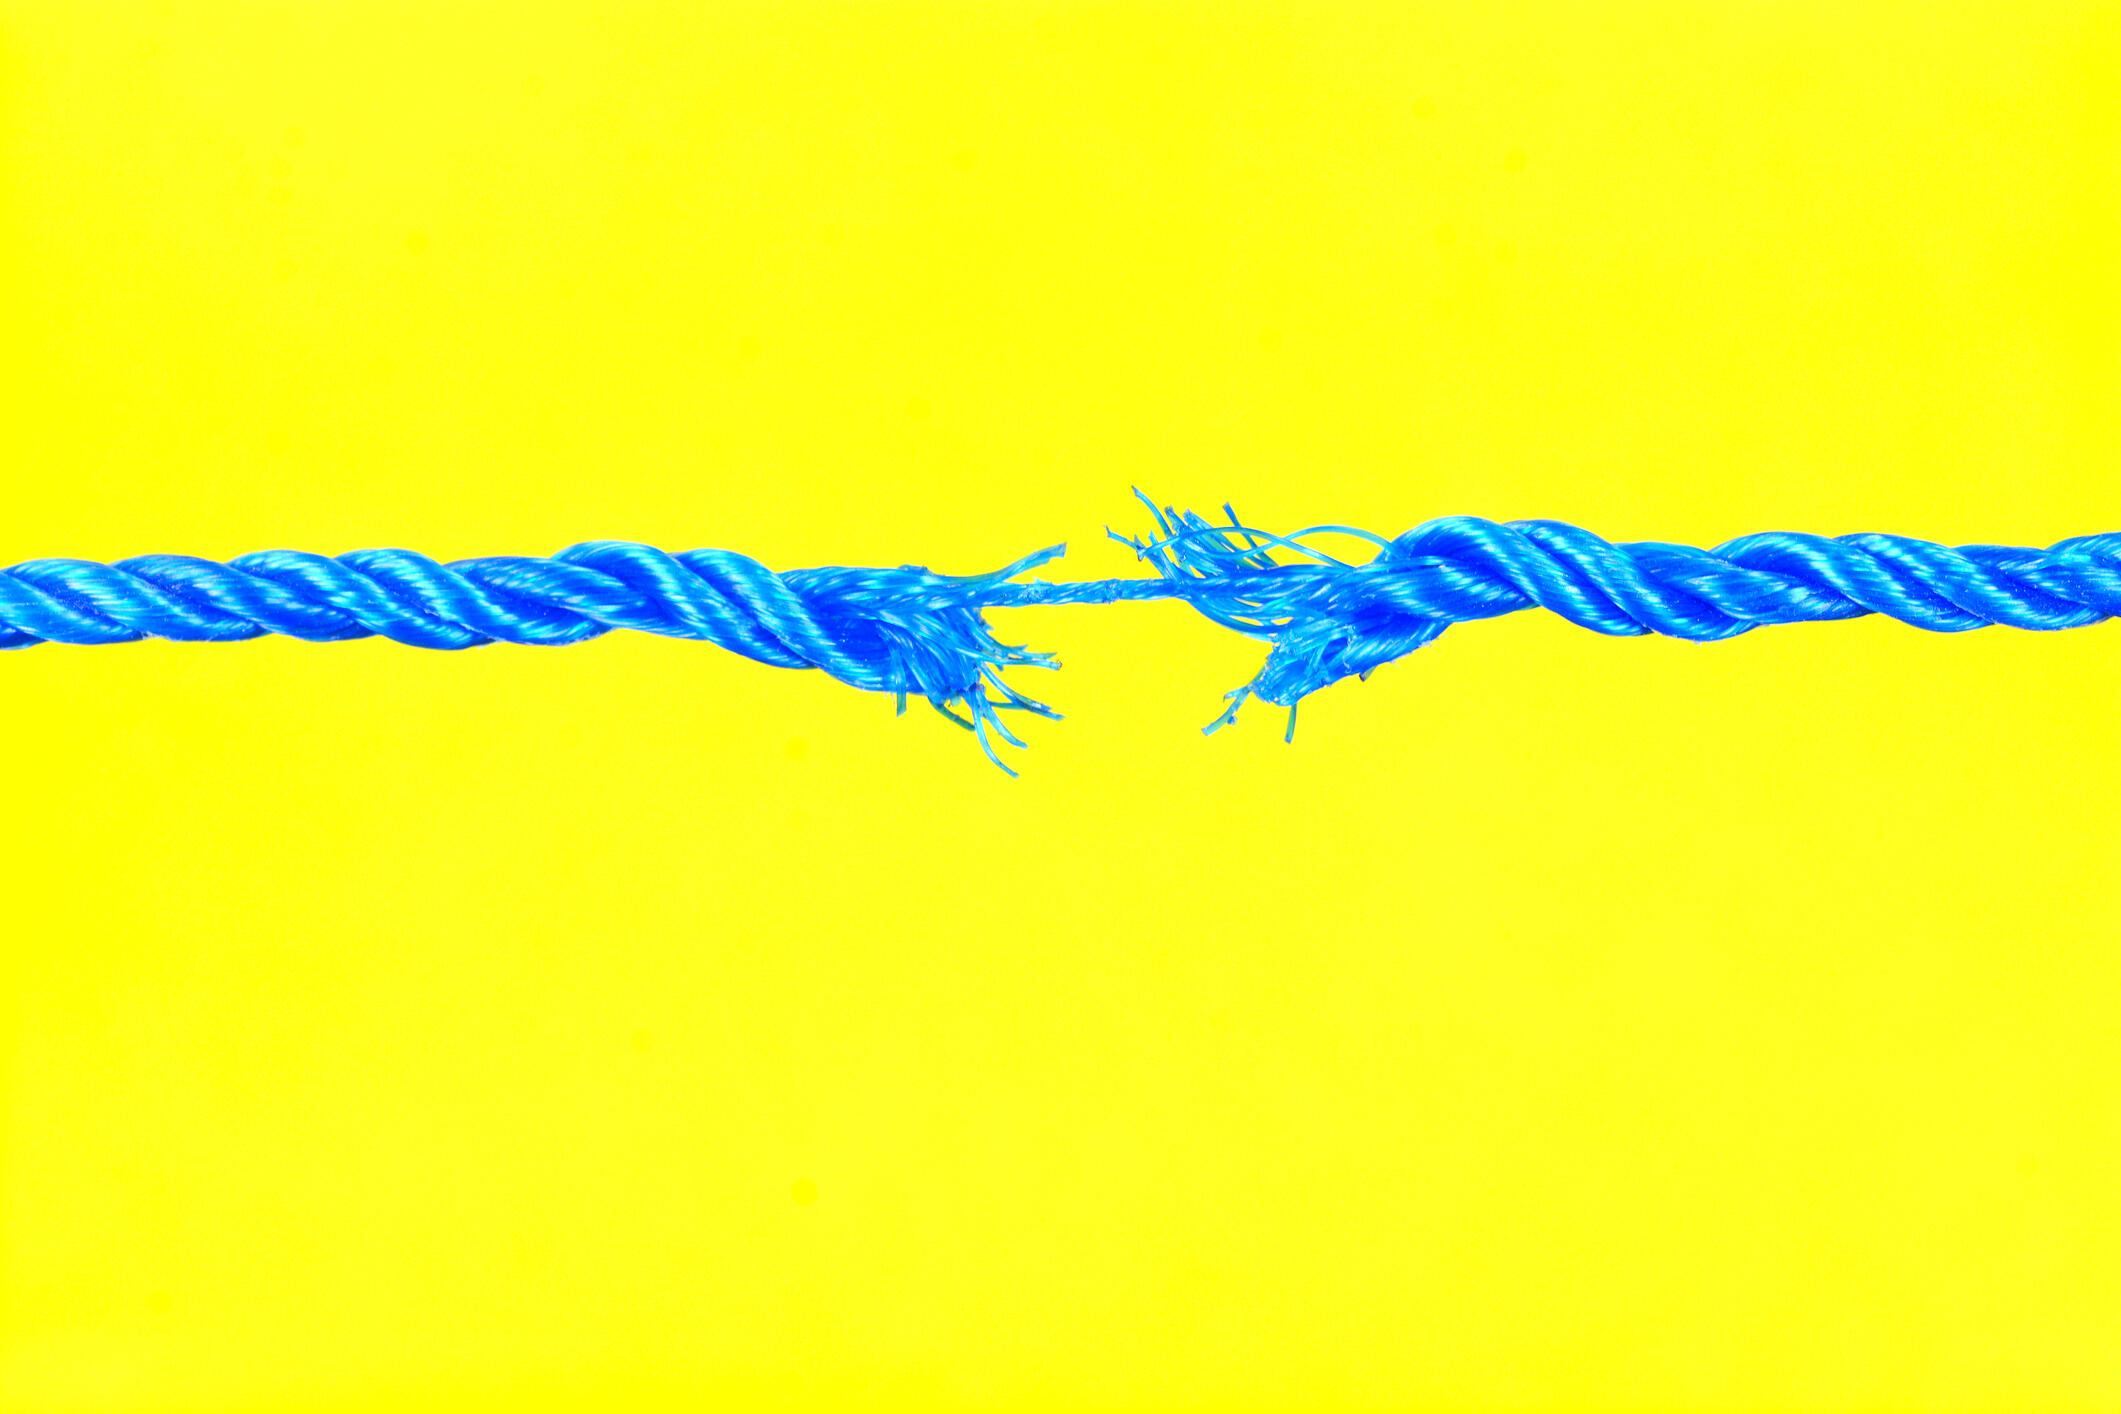 bright yellow background with a blue frayed rope at the forefront